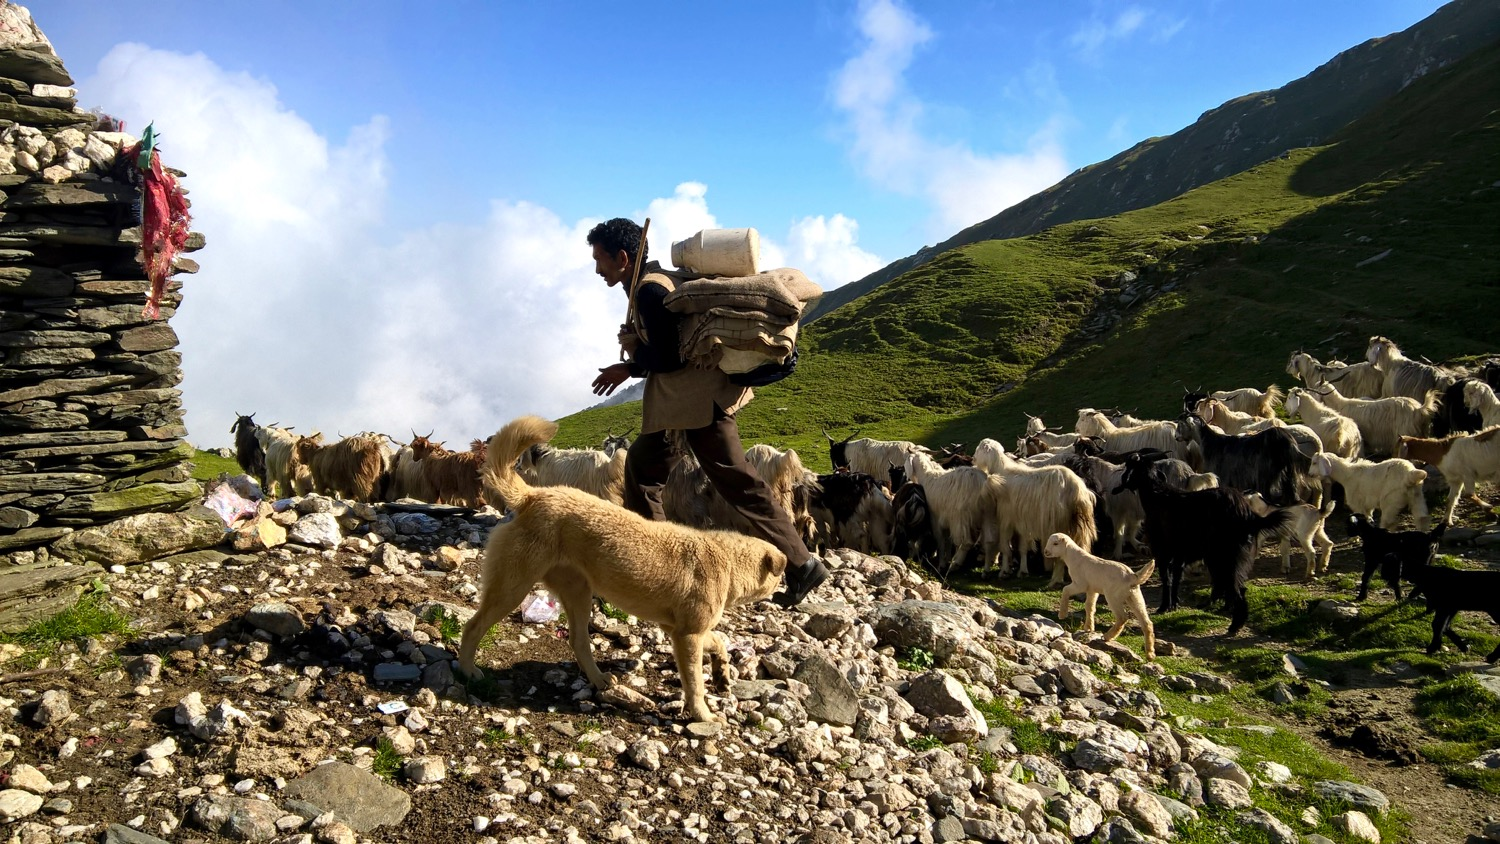 Jalsu Pass in its natural element with Gaddi, sheep, goats and a fluffy dog